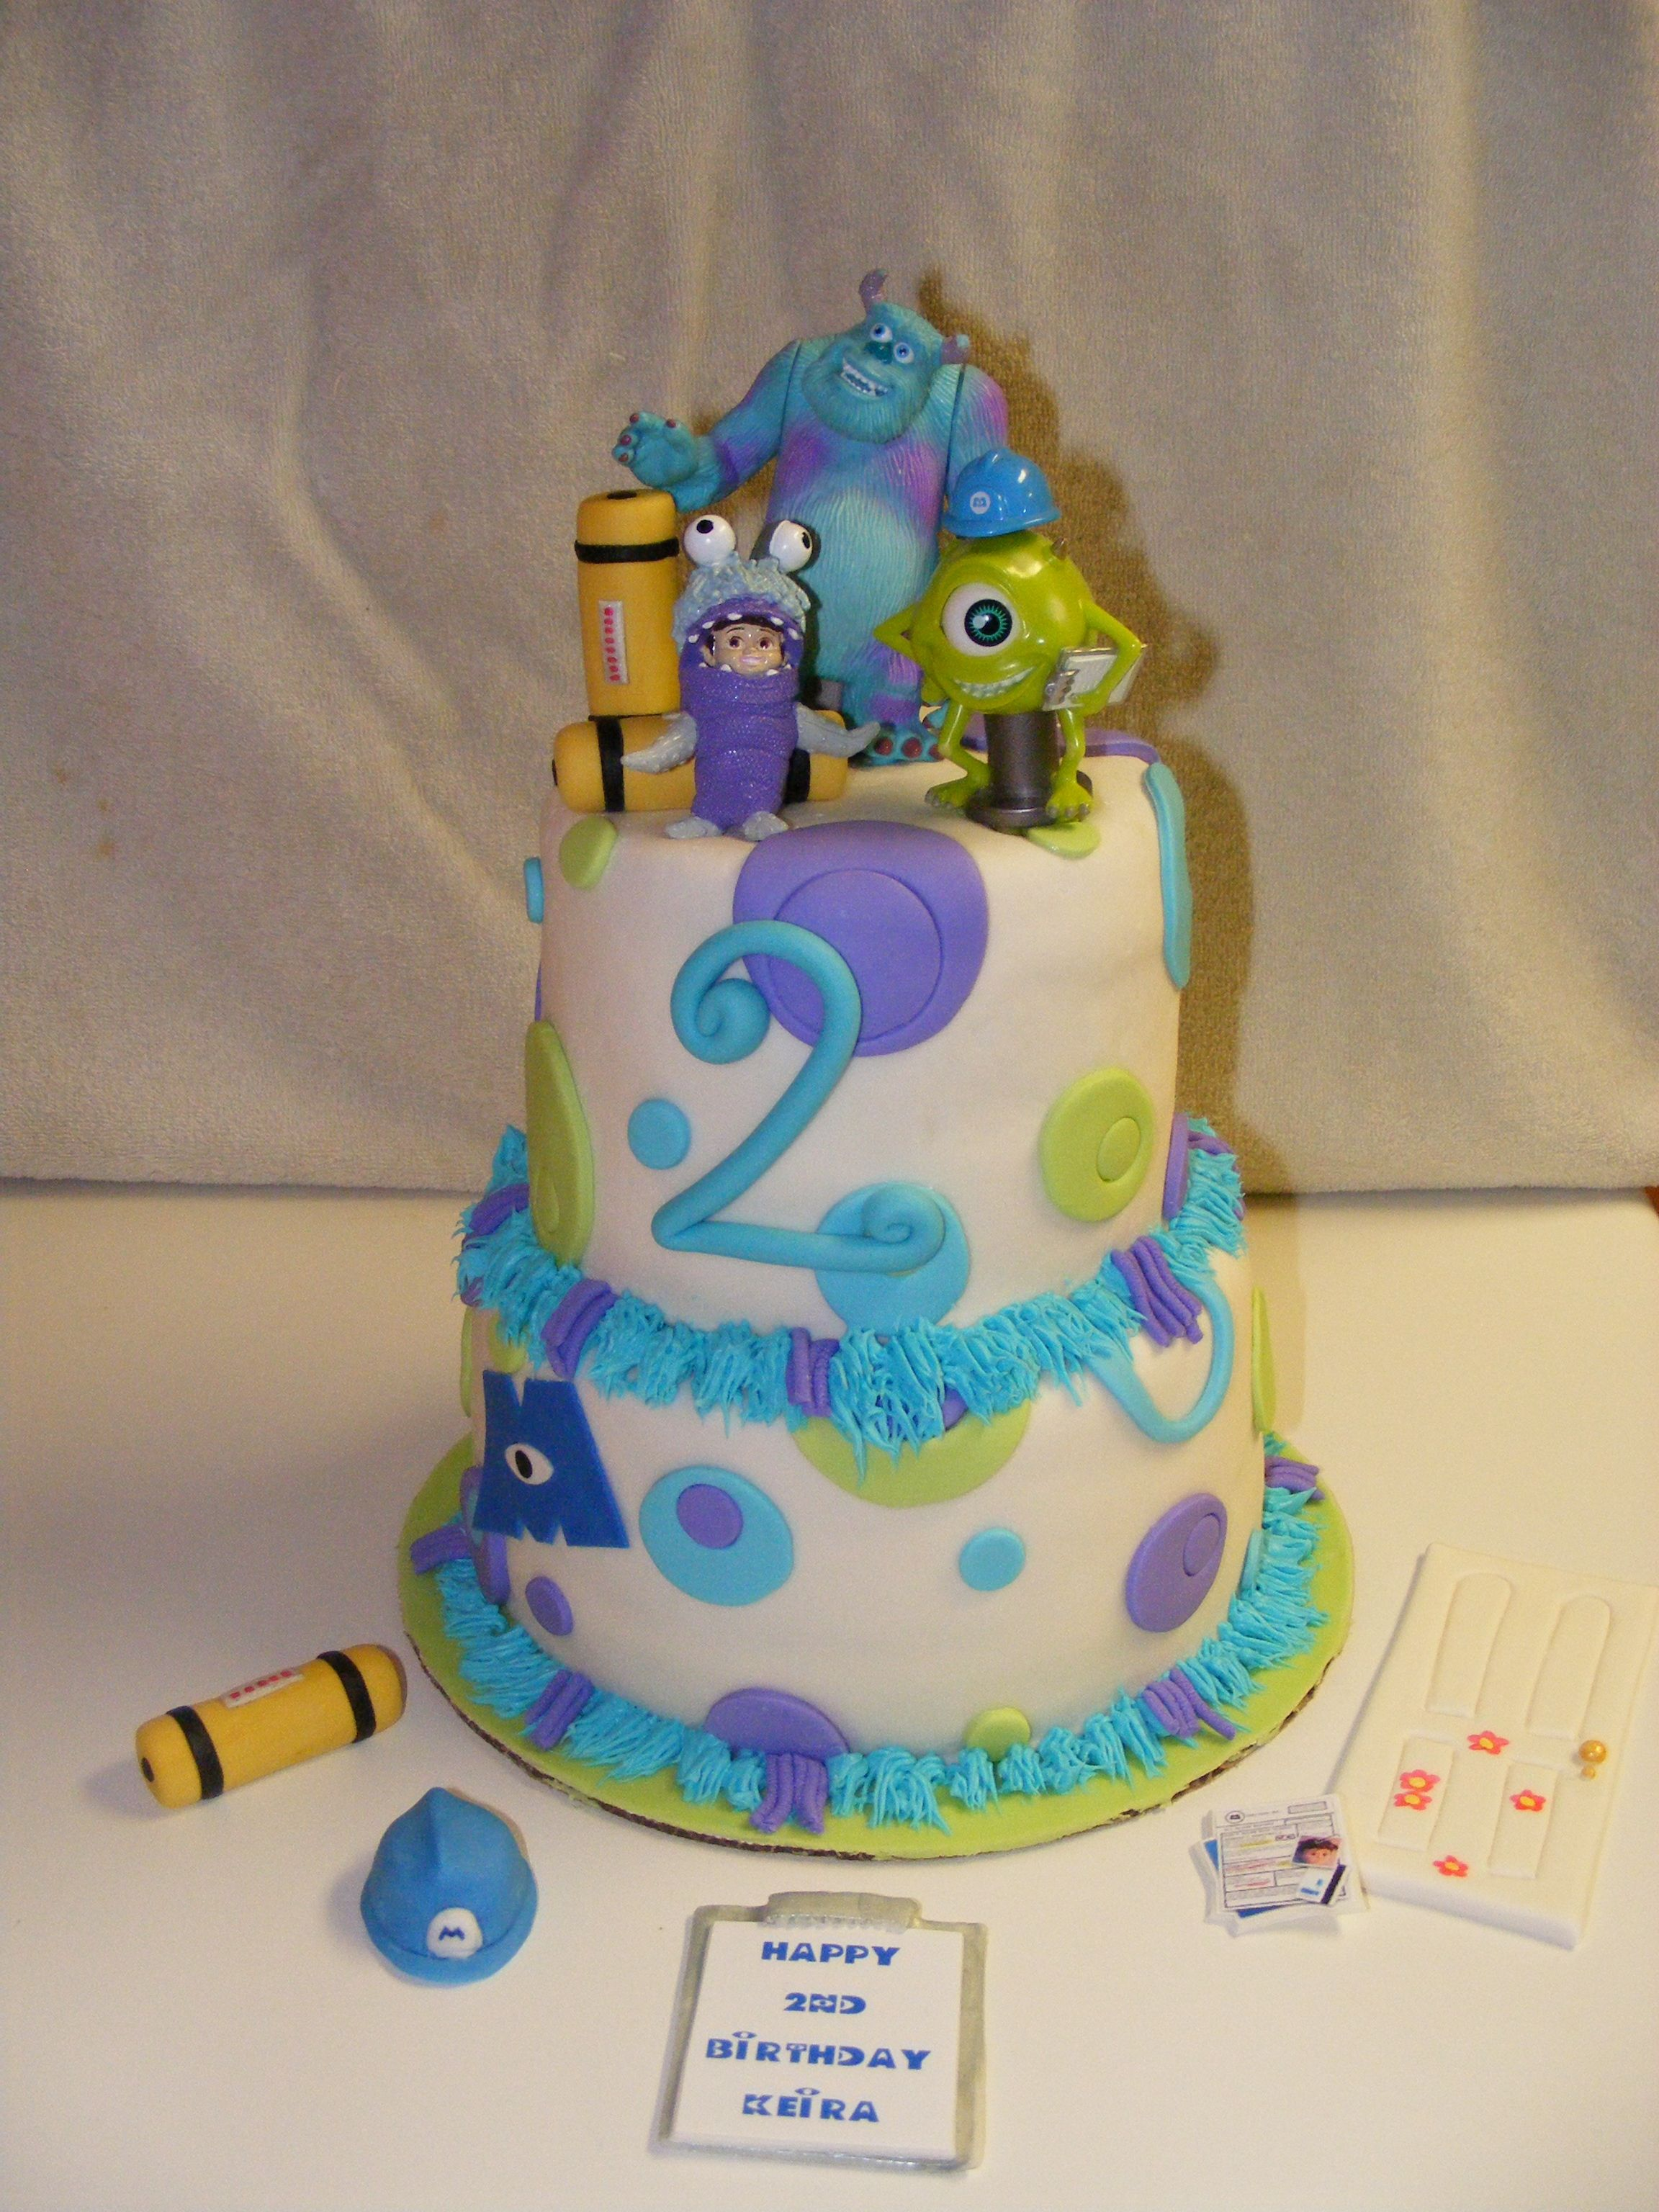 Monsters Inc birthday cake Could do with just the color polka dots